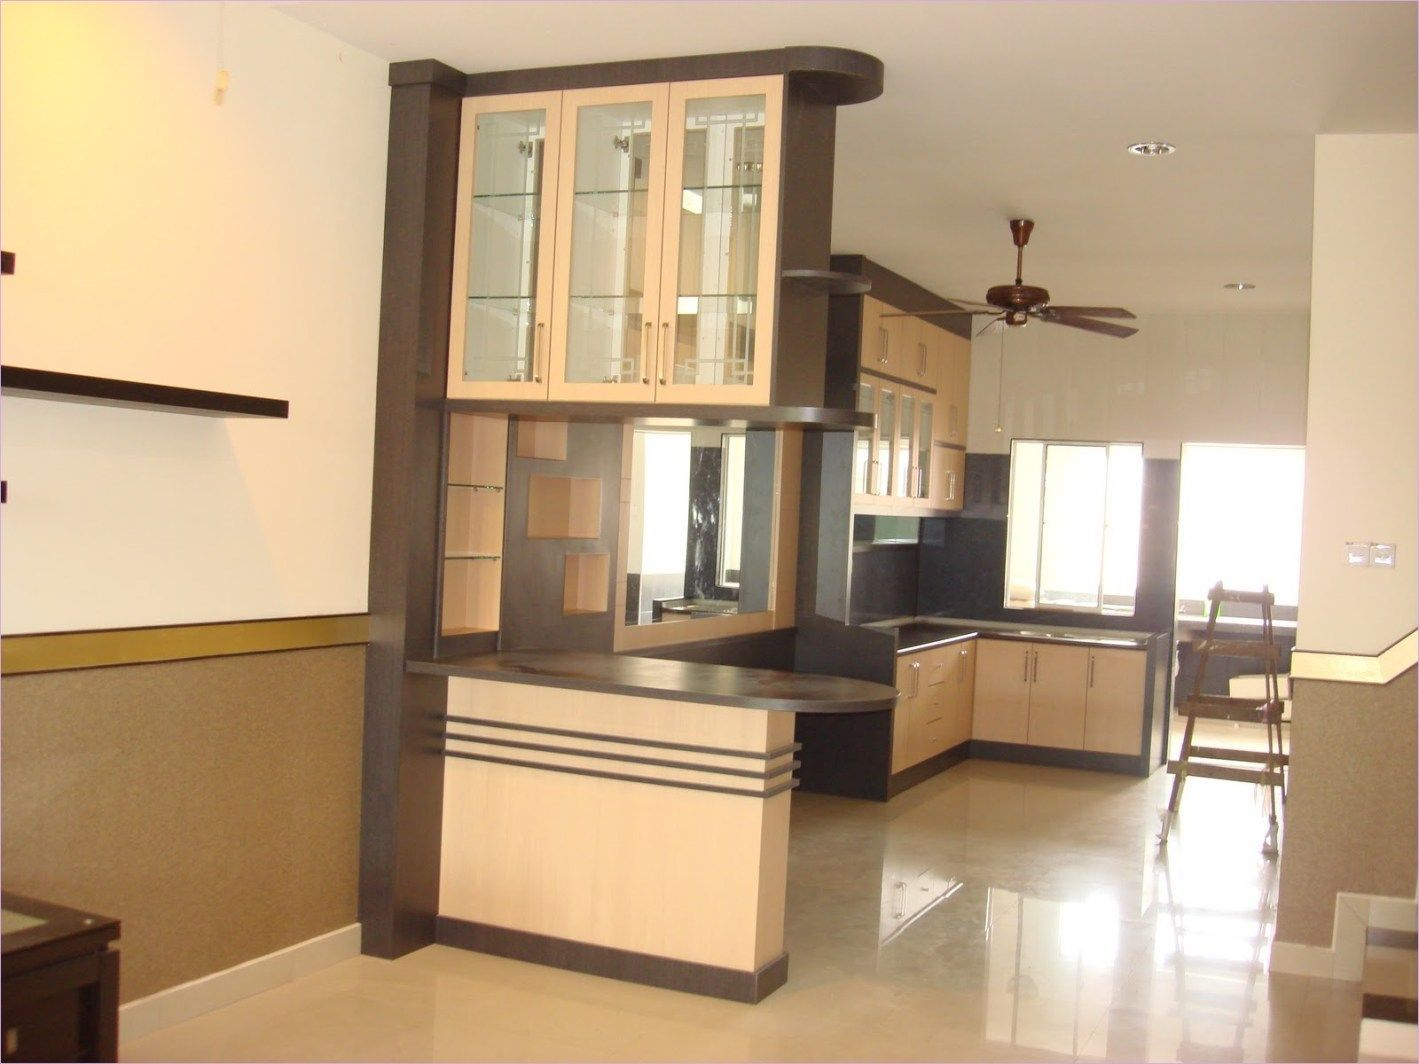 Living Room And Kitchen Partition Ideas Living Room Kitchen Partition Living Room Divider Living Room Partition Kitchen living room divider ideas home